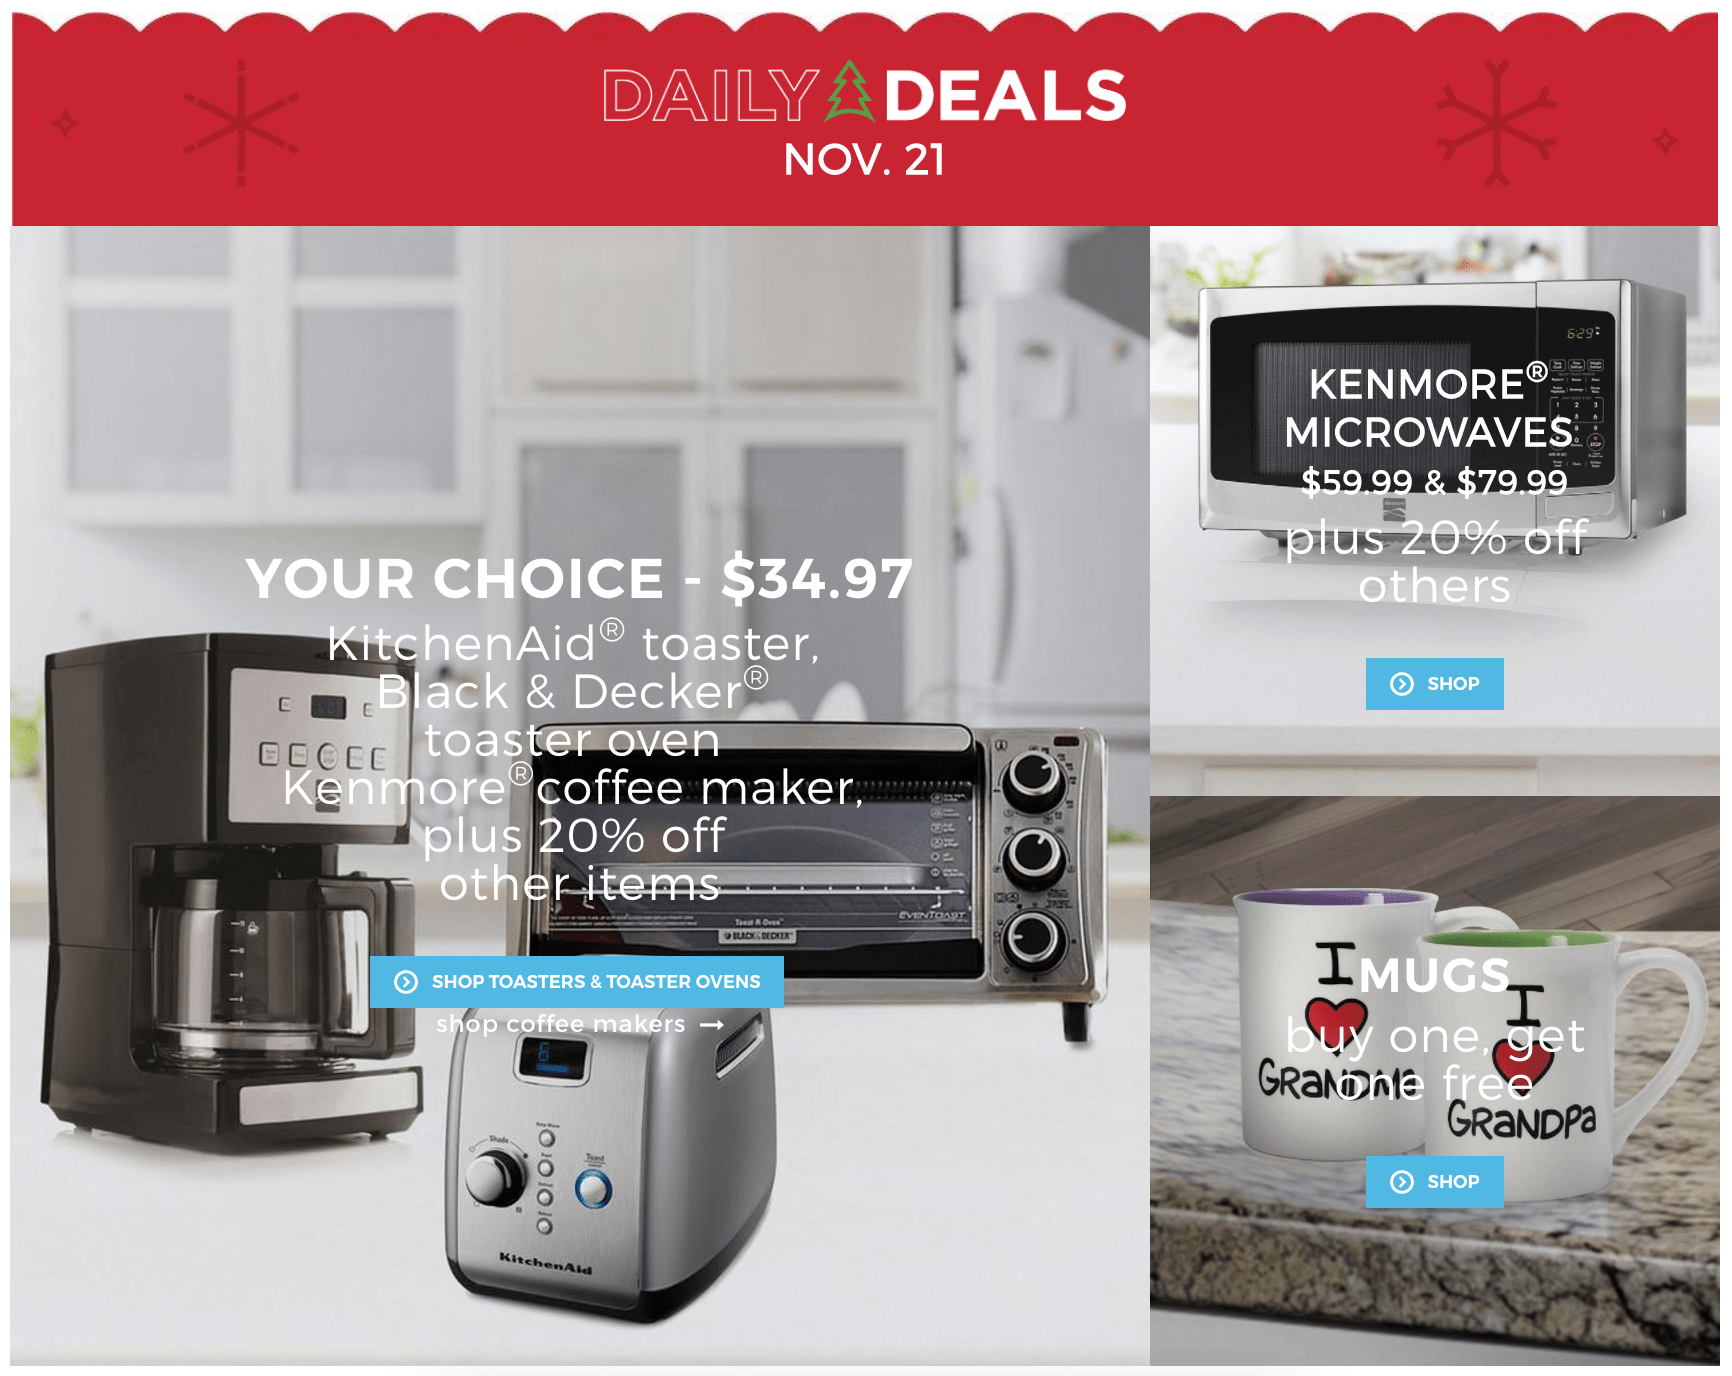 Sears Canada Daily Deals: Save 65% Off KitchenAid® Toaster + Save on Toaster Ovens, Coffee Makers & Microwaves + Mugs Buy 1 Get 1 FREE!